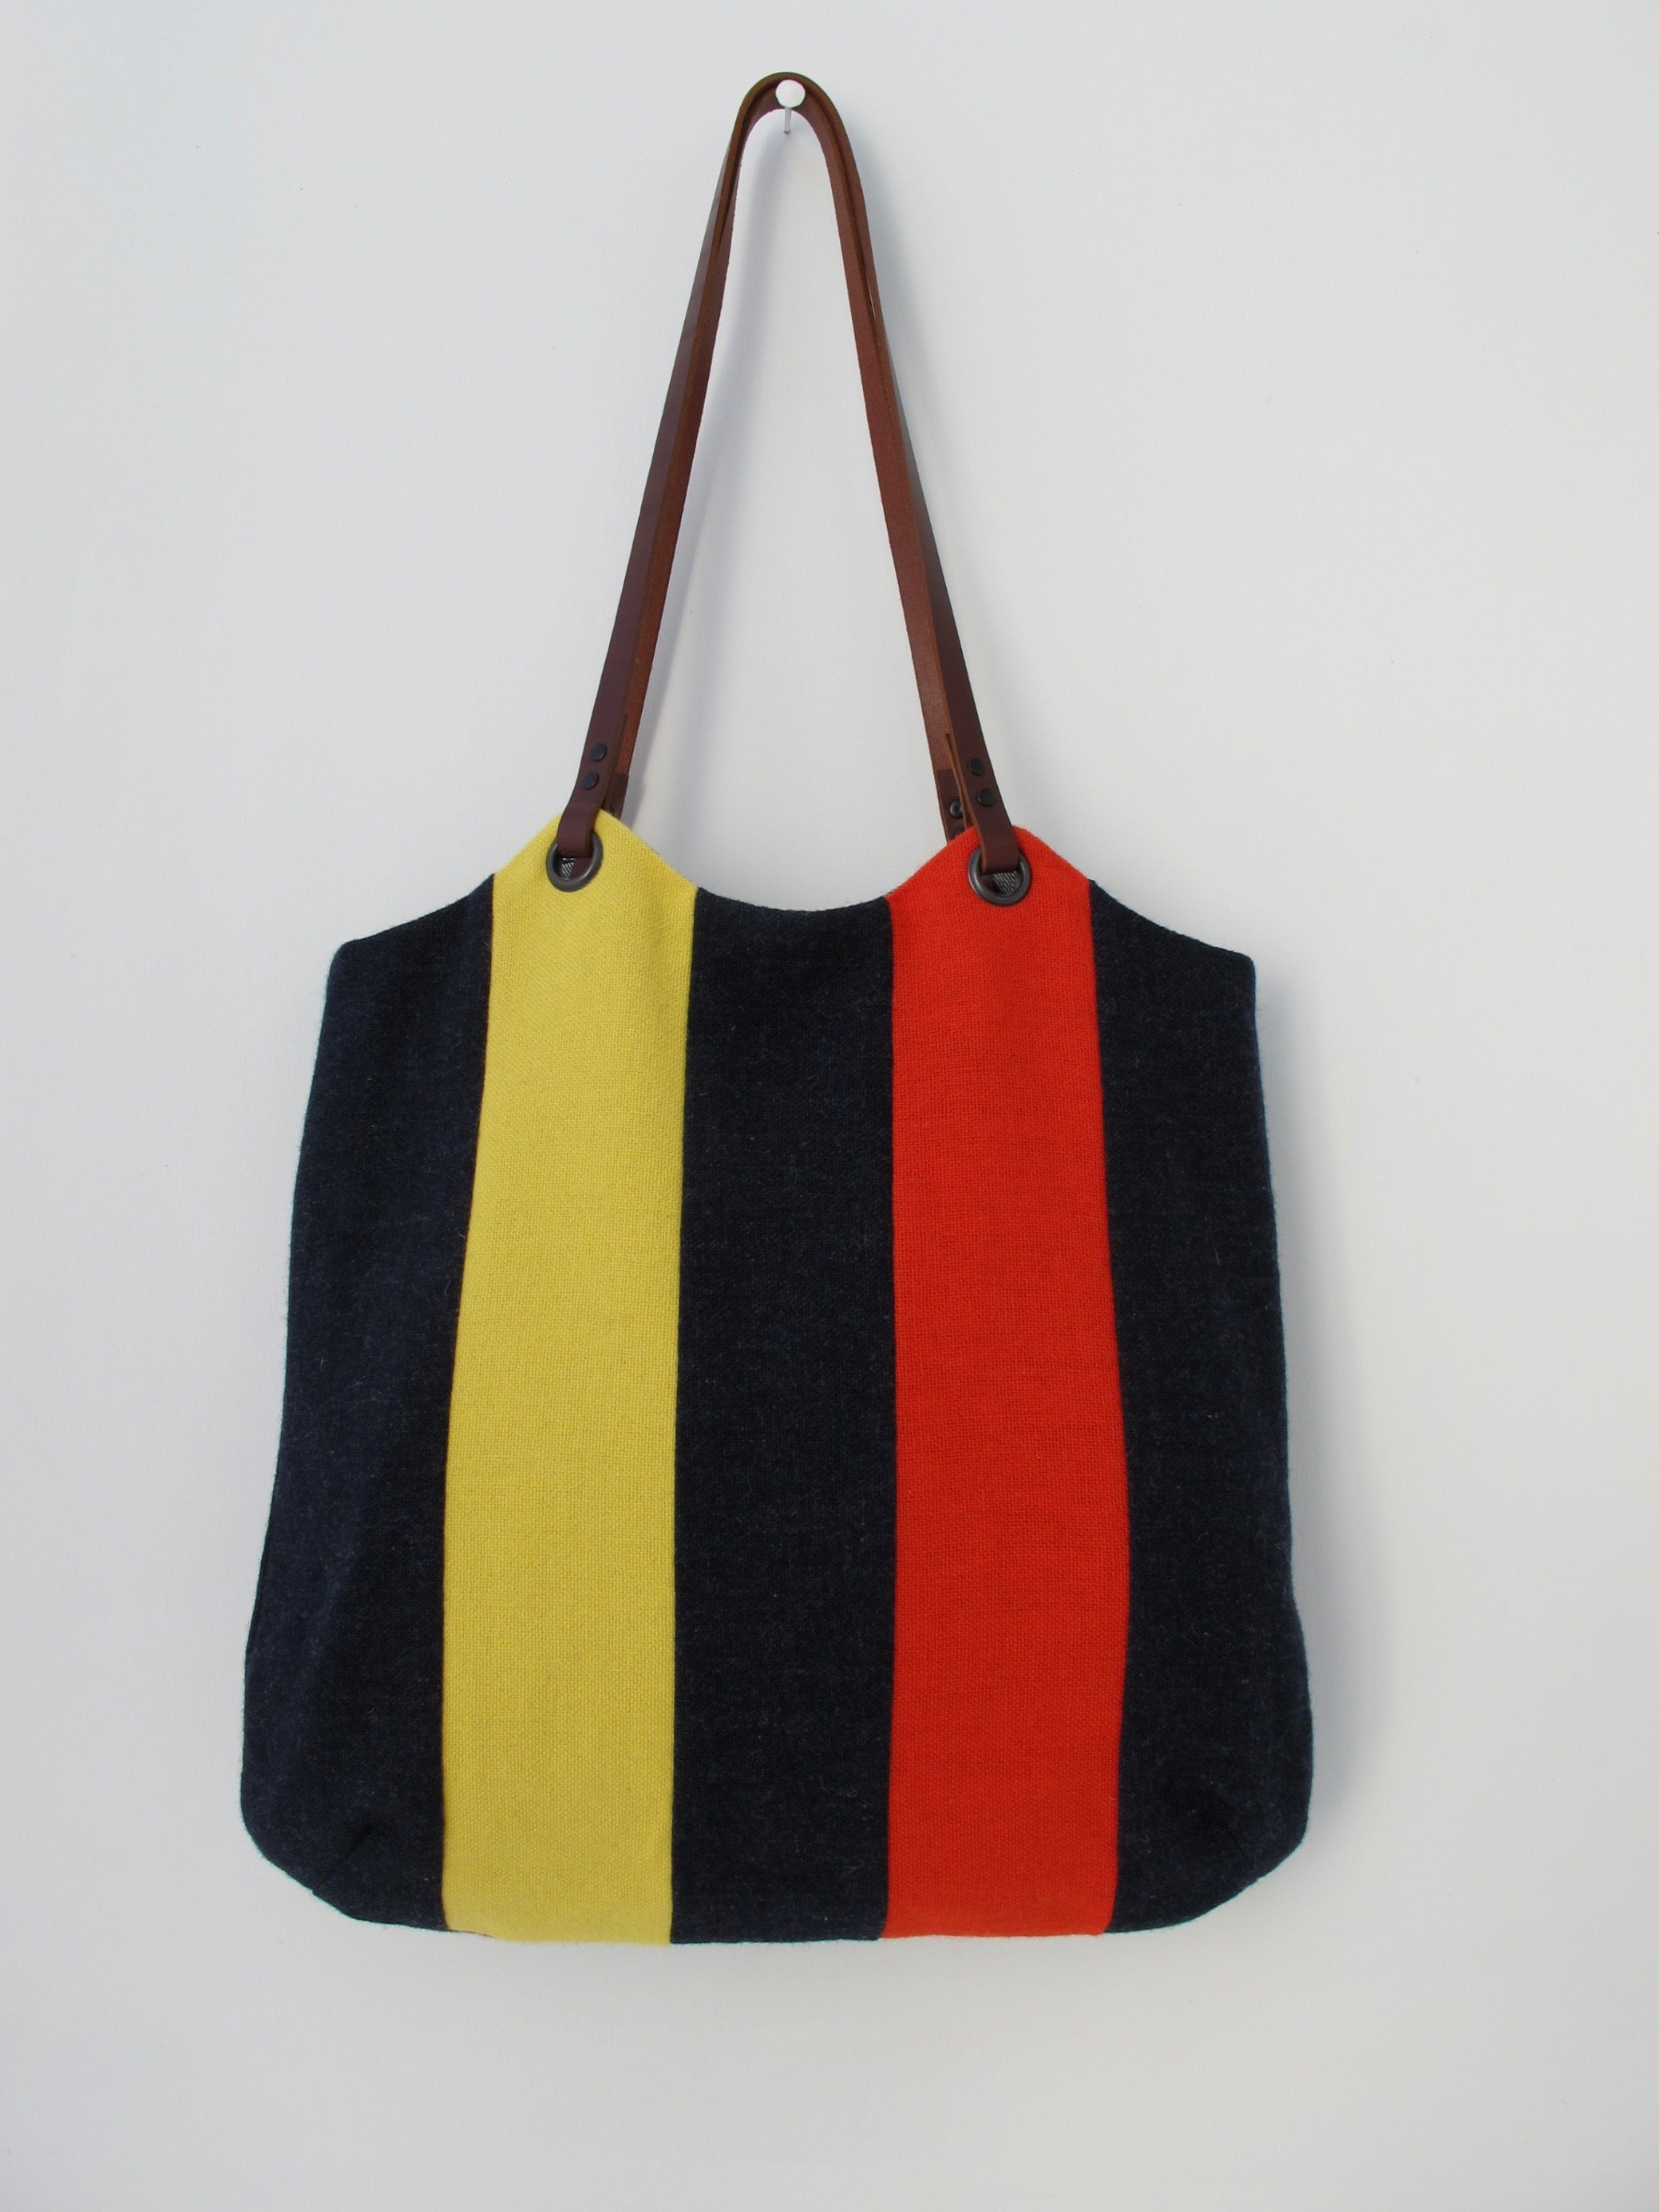 Patchwork Tote Bag - indigo, red & yellow stripe